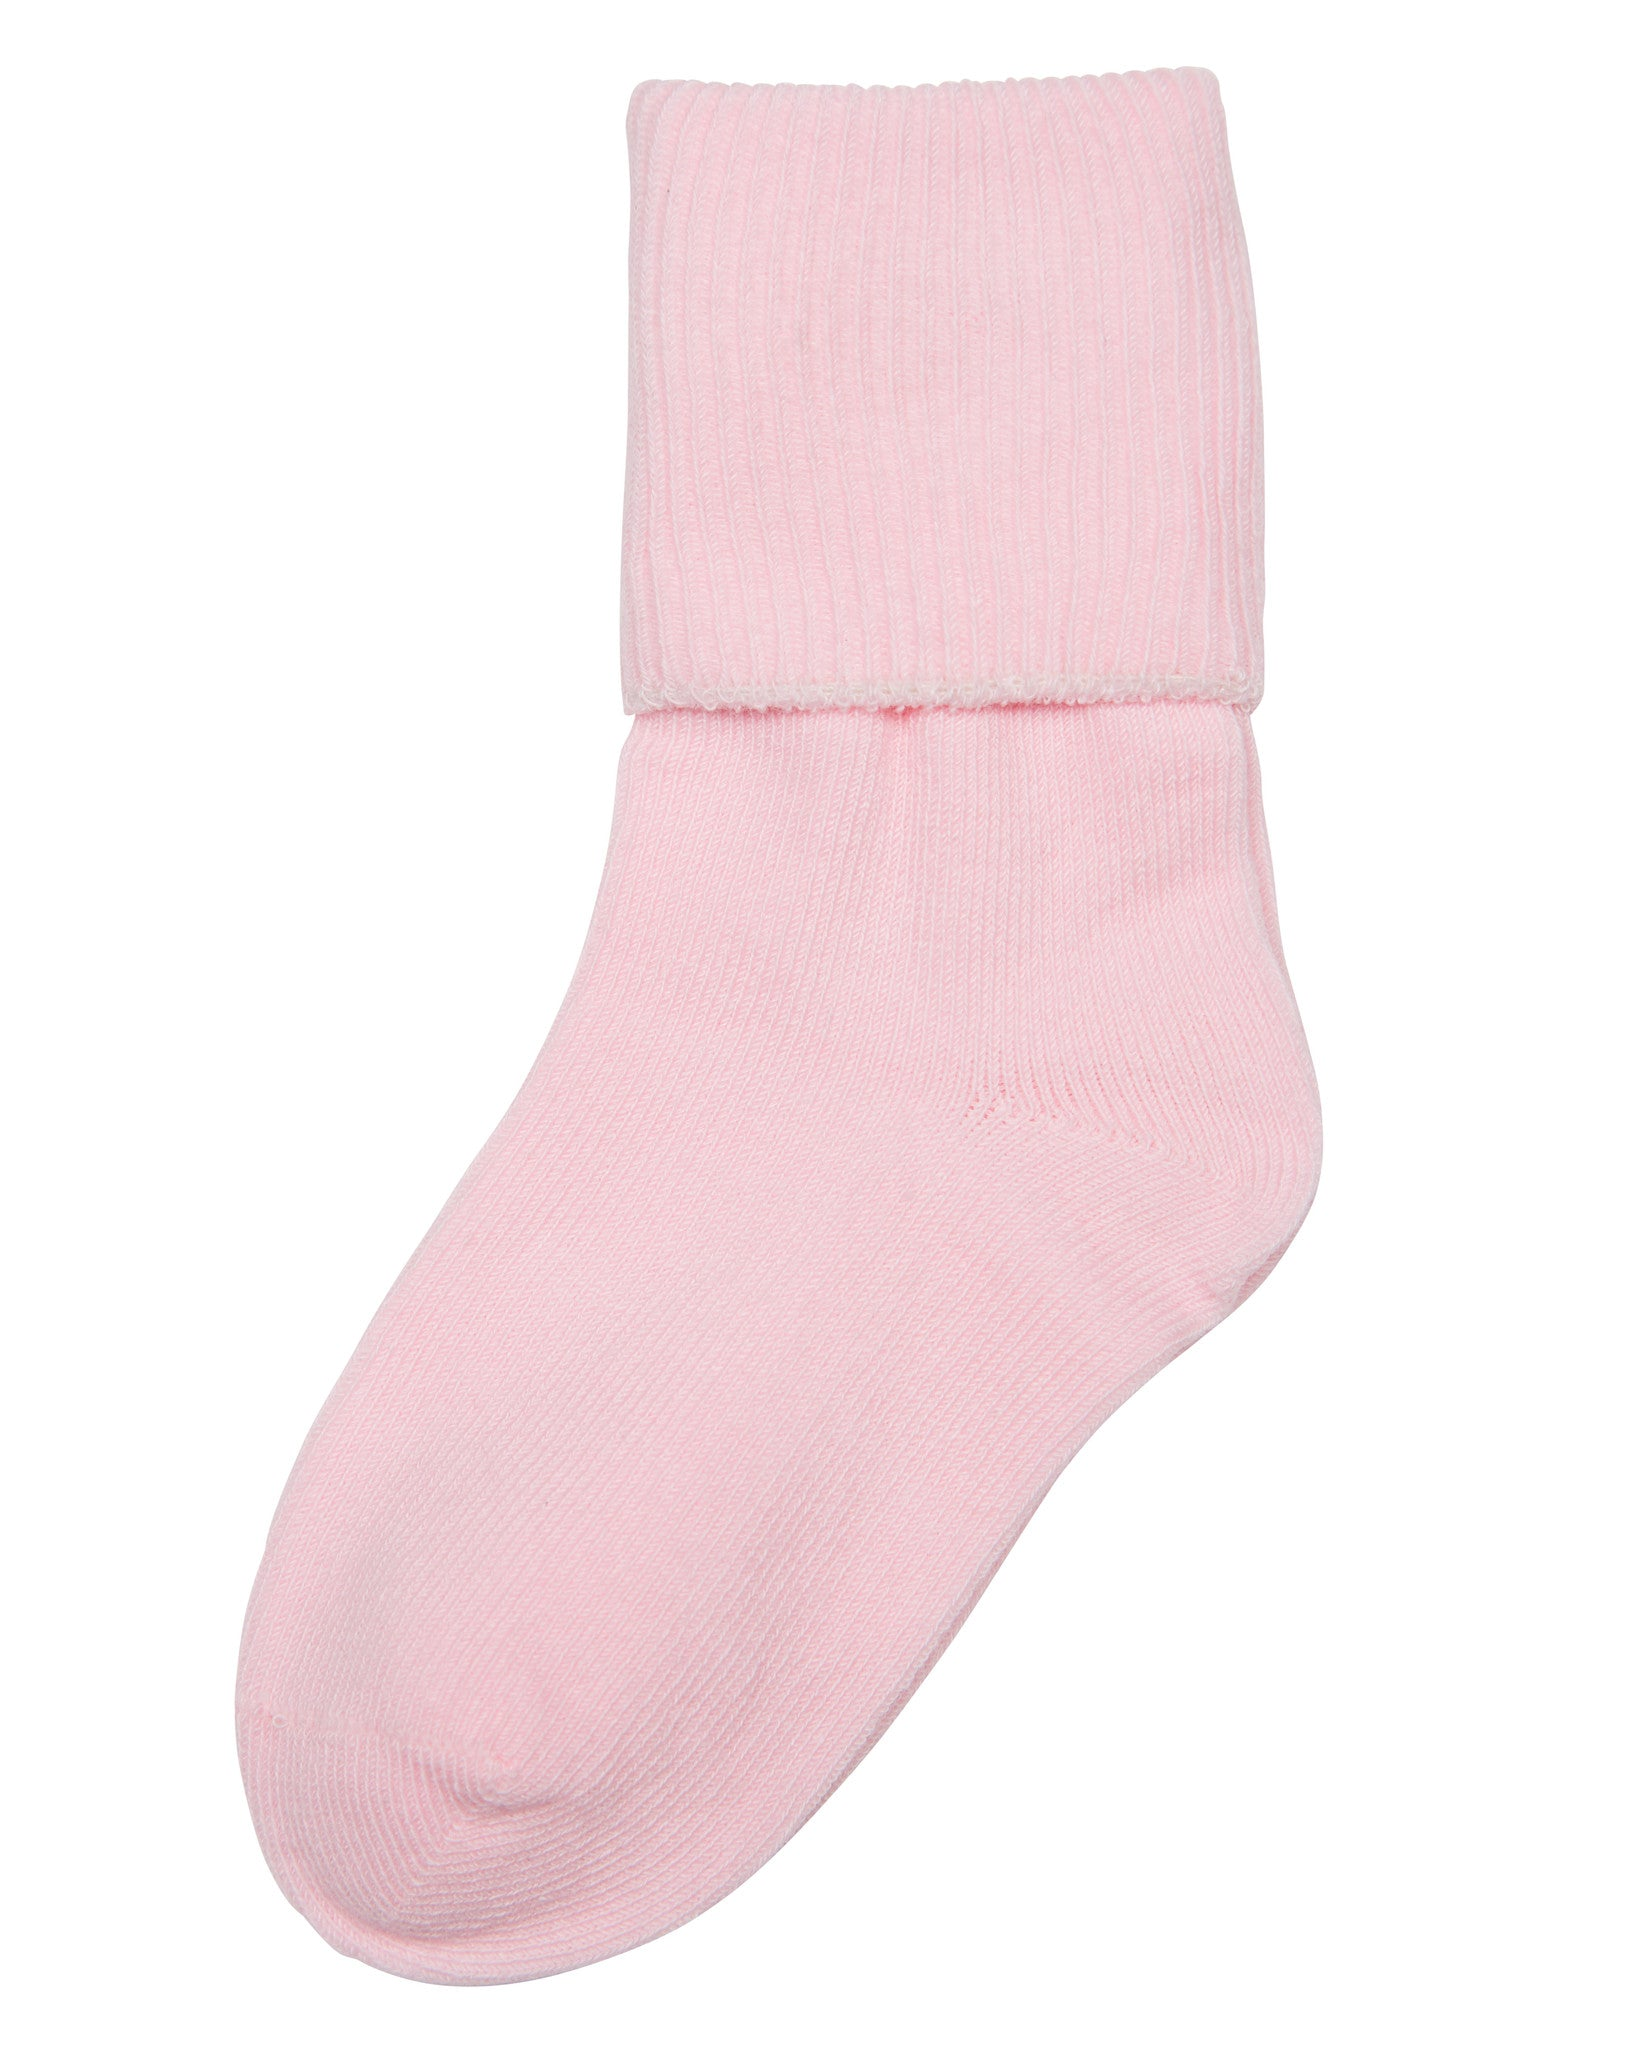 1-Pack Big Girls Single Cuff (Comfortoe) Pink Socks